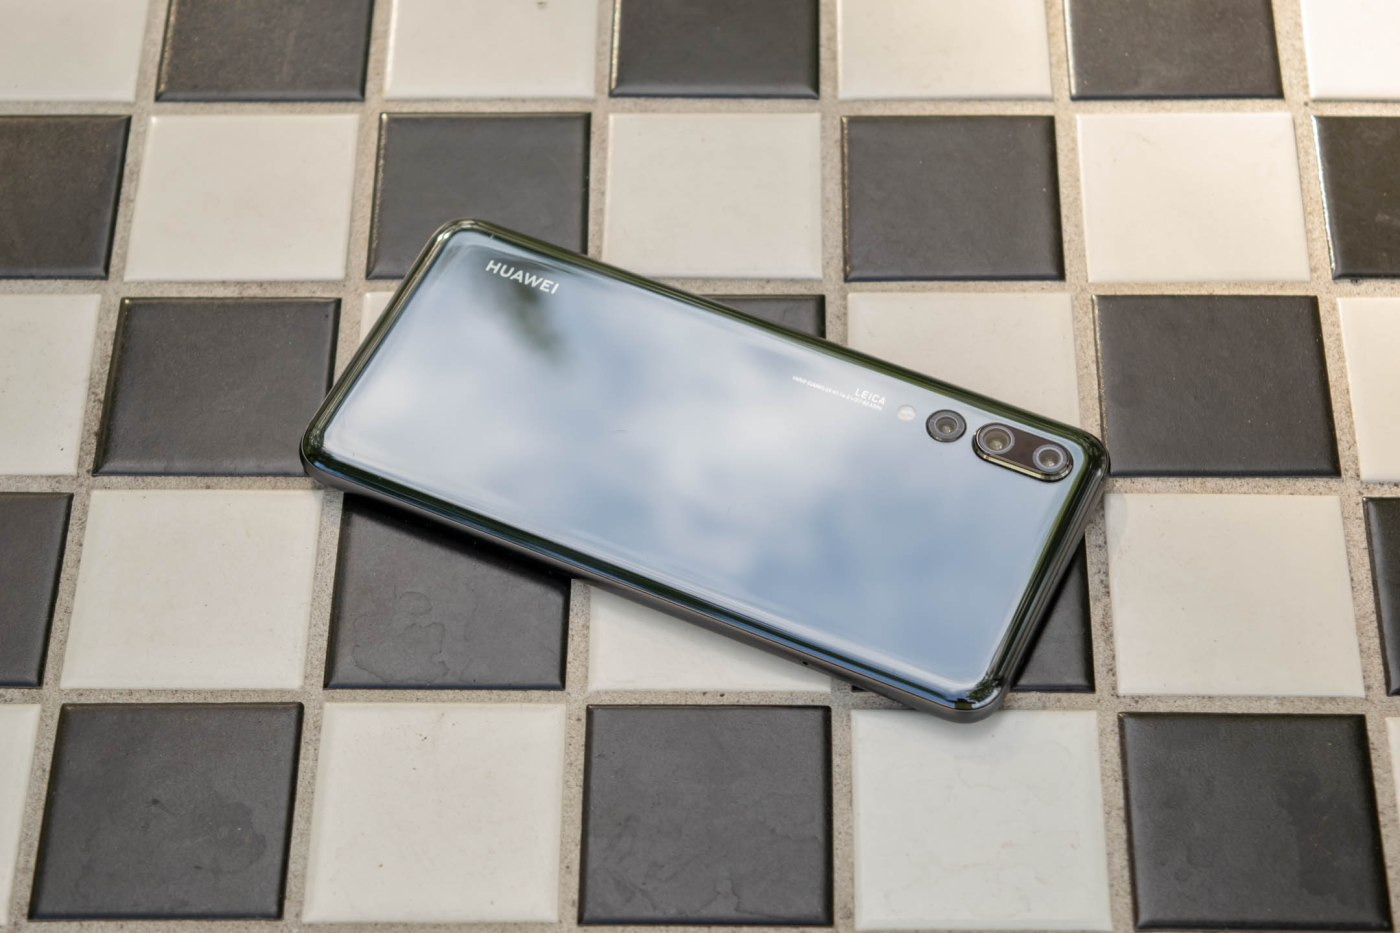 Huawei P20 Pro EMUI 8.1 Android News Martin Ottawa Canada review